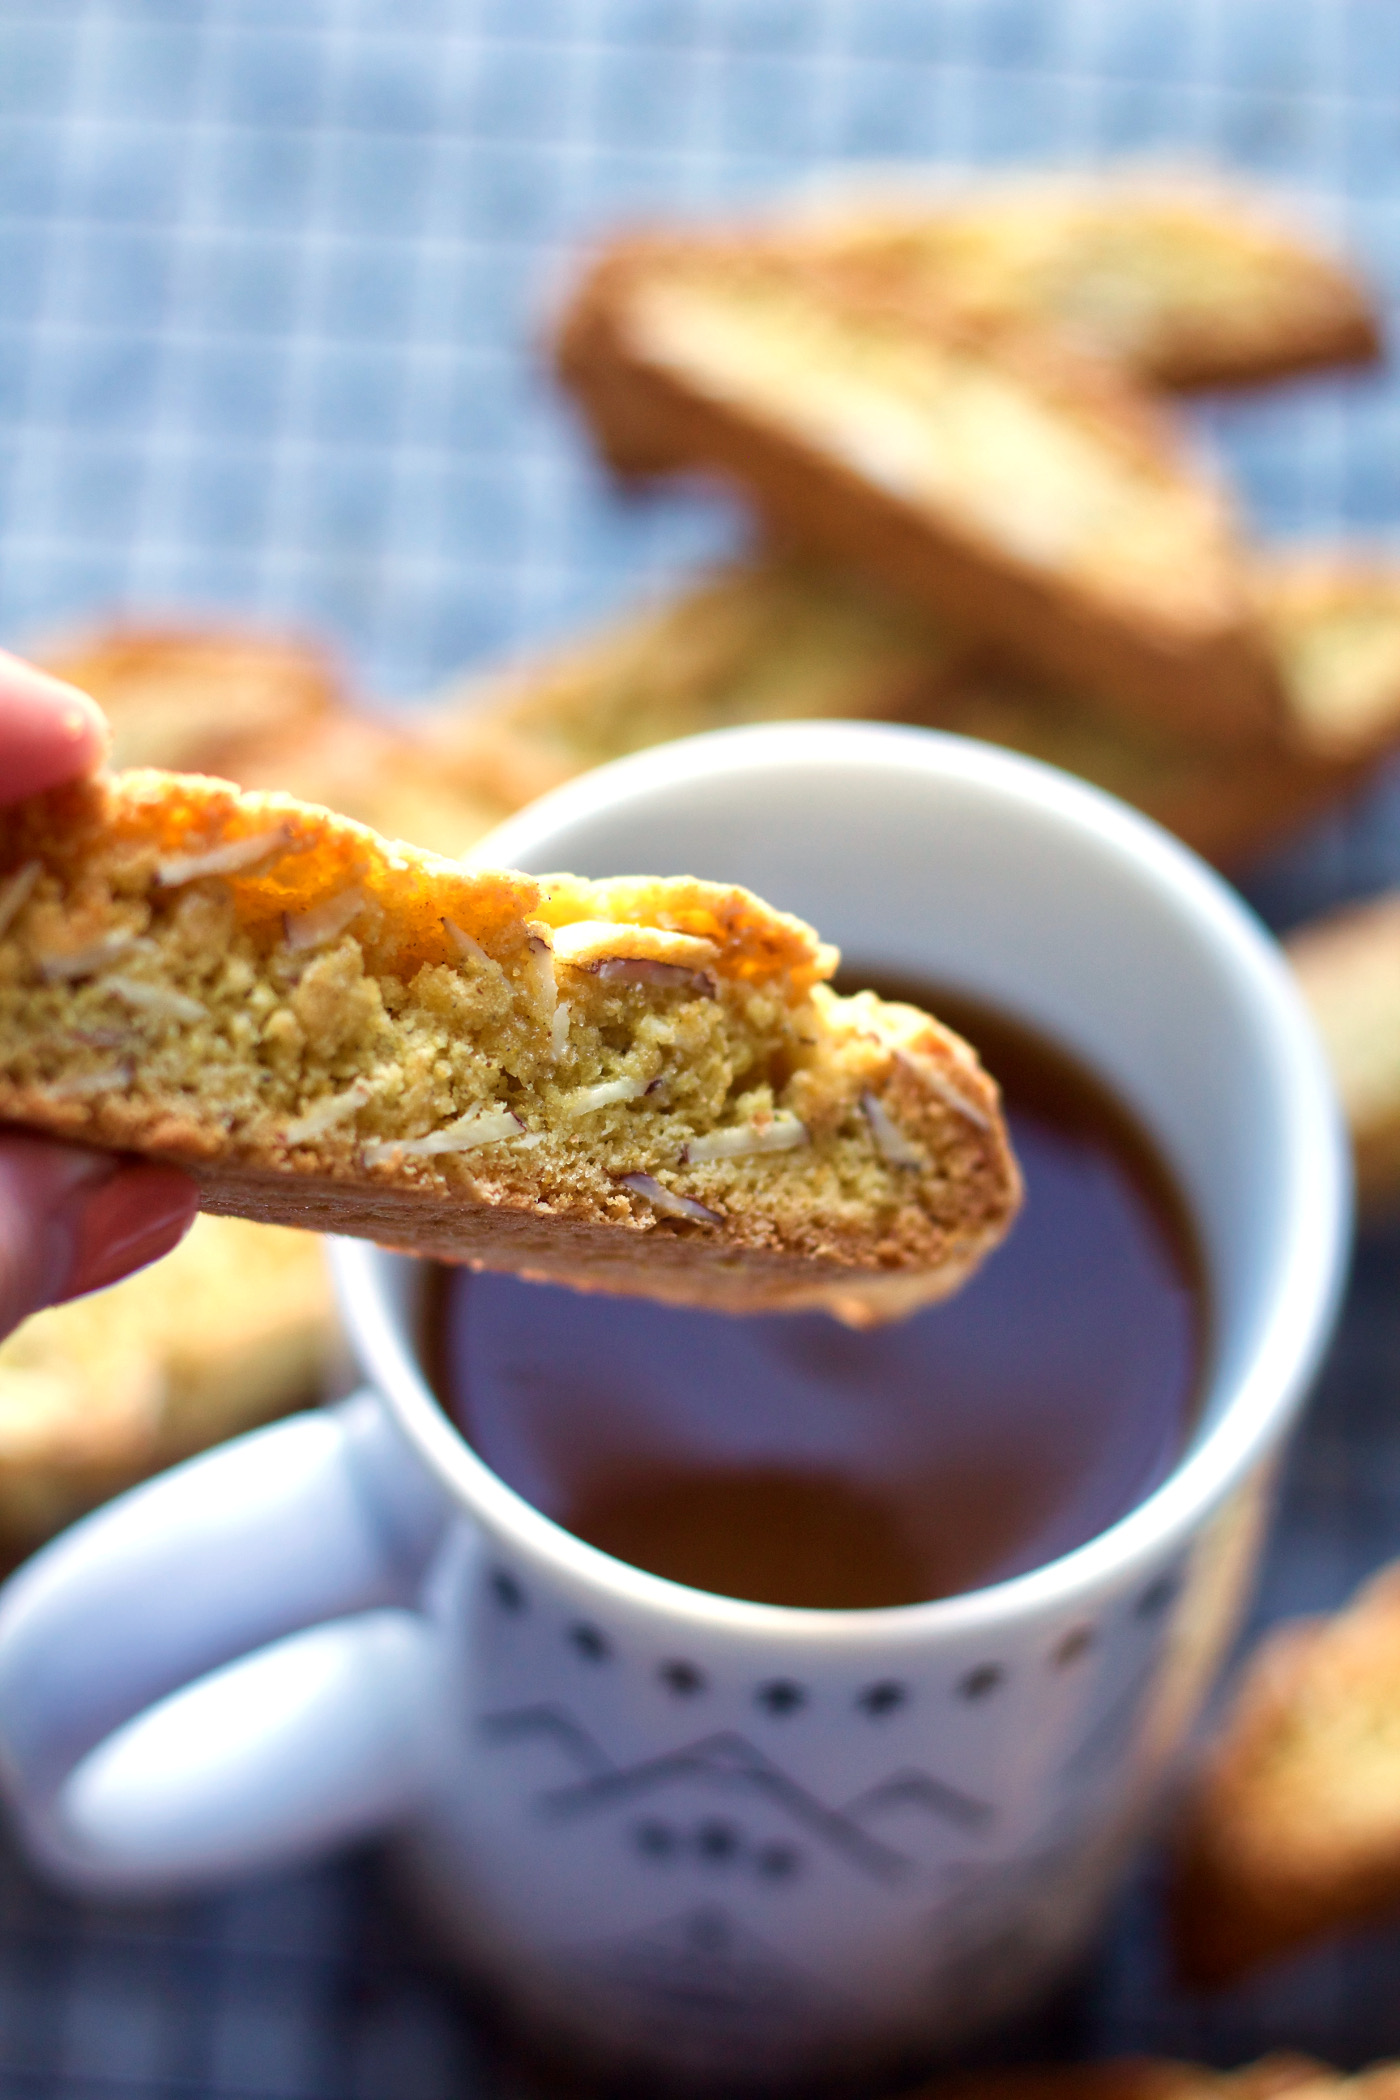 Cardamom Biscotti with Orange Zest